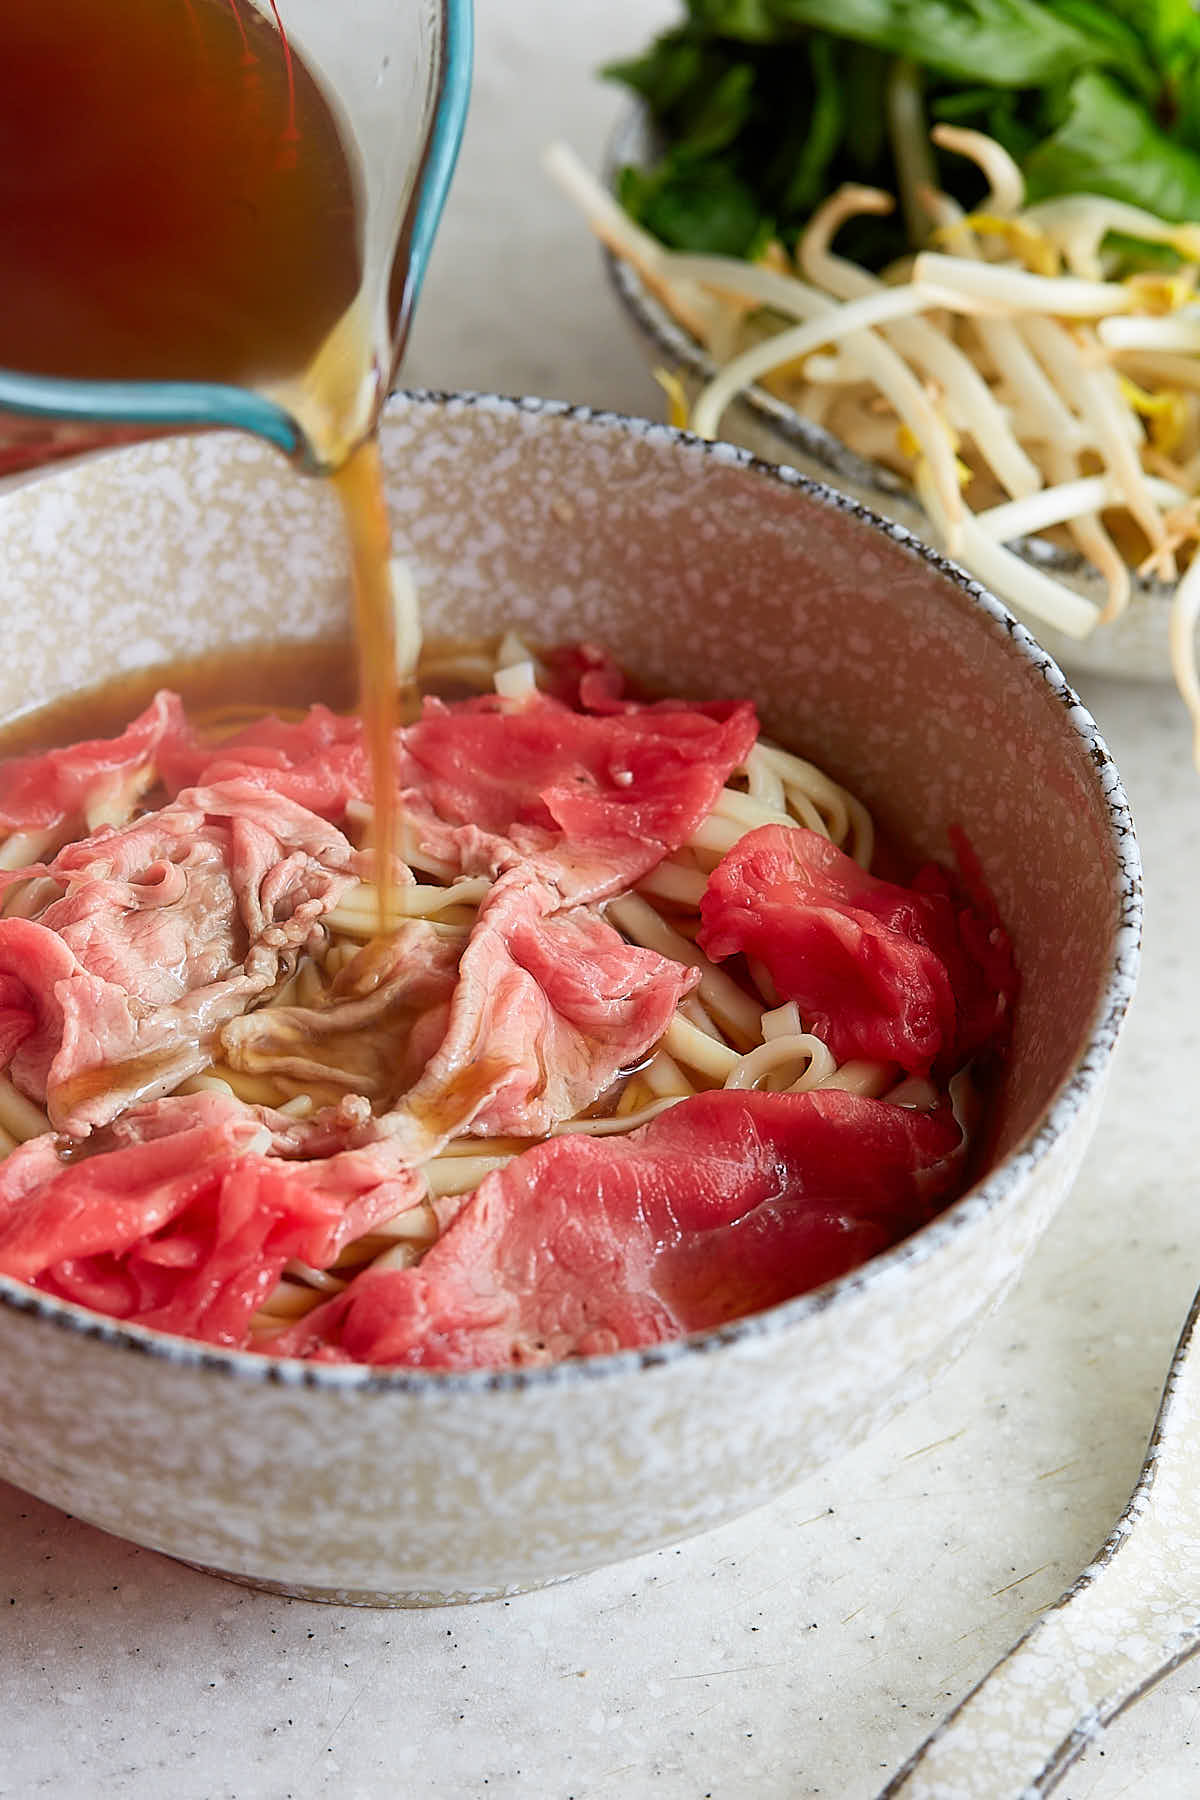 Pouring hot beef broth over raw beef slices in a bowl.